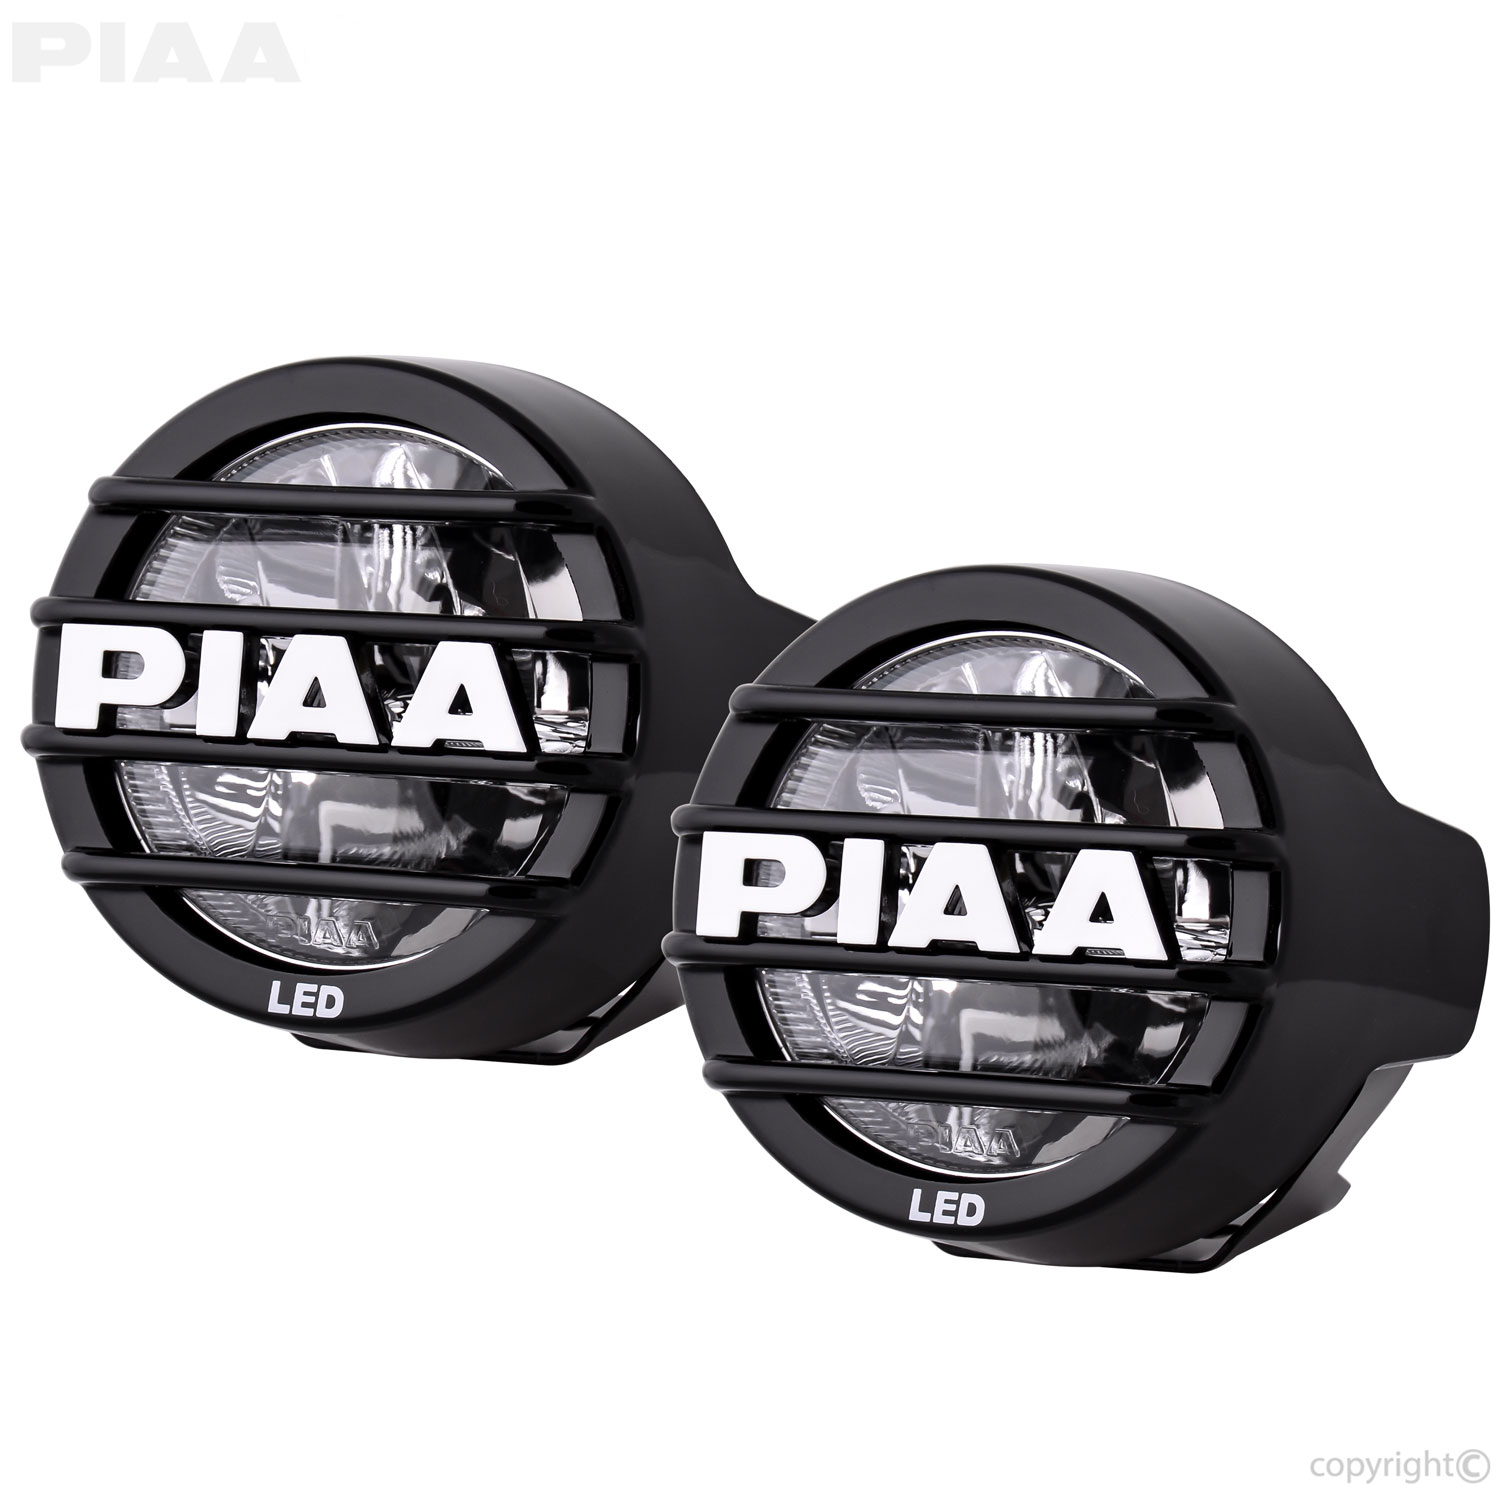 Led White Piaa Lp530 Led White Driving Beam Kit